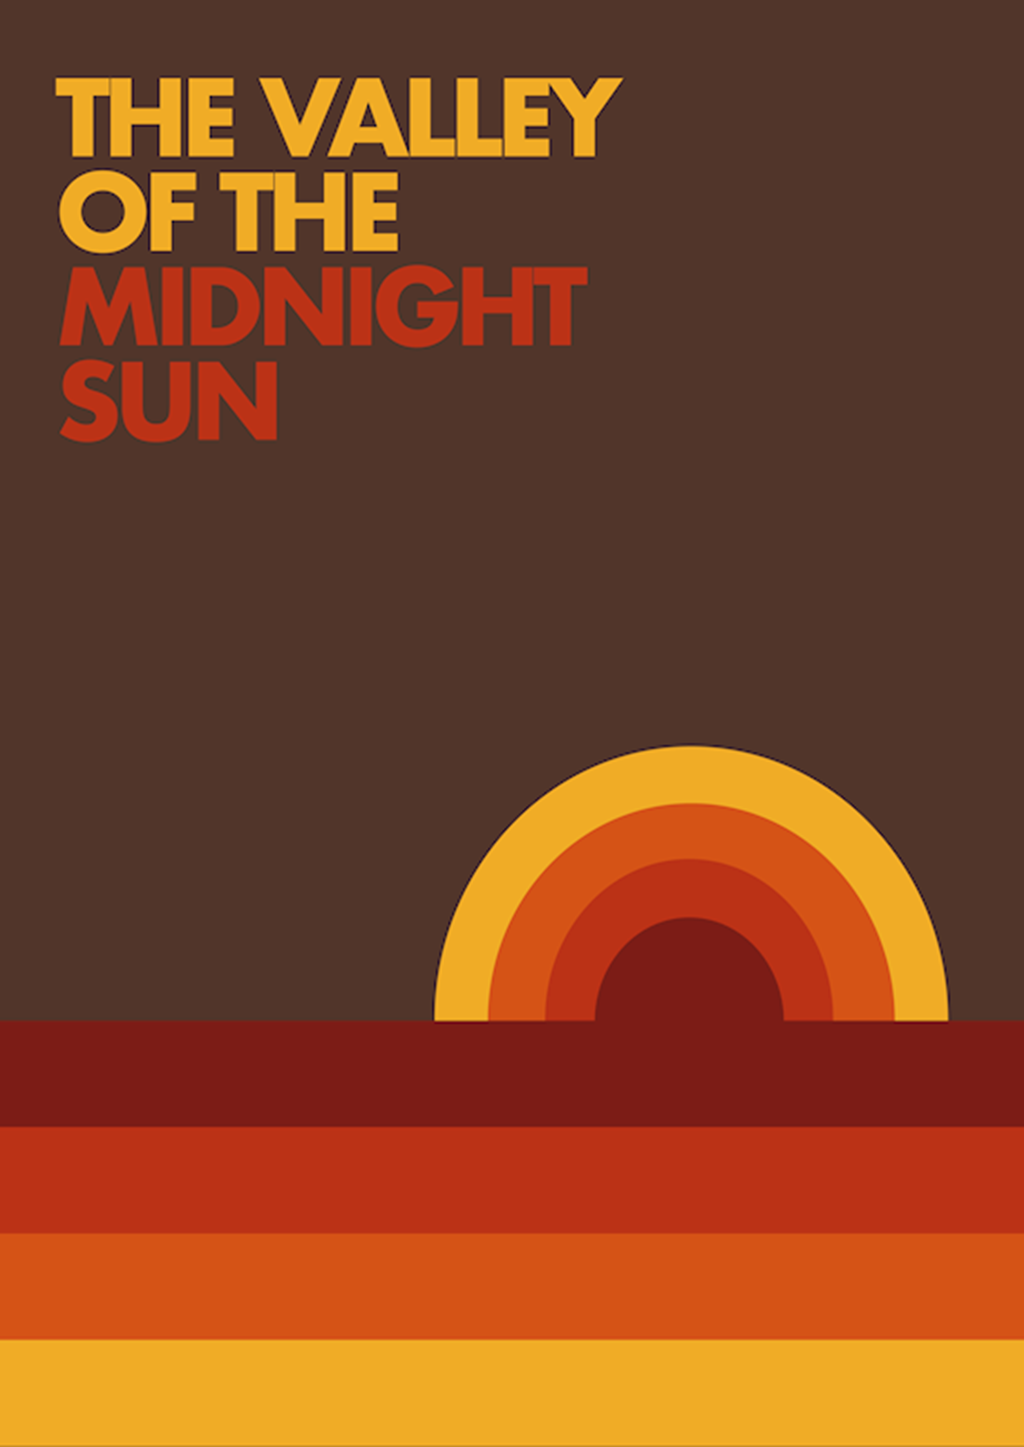 Poster: The valley of the midnight sun - Arkitektur & Design